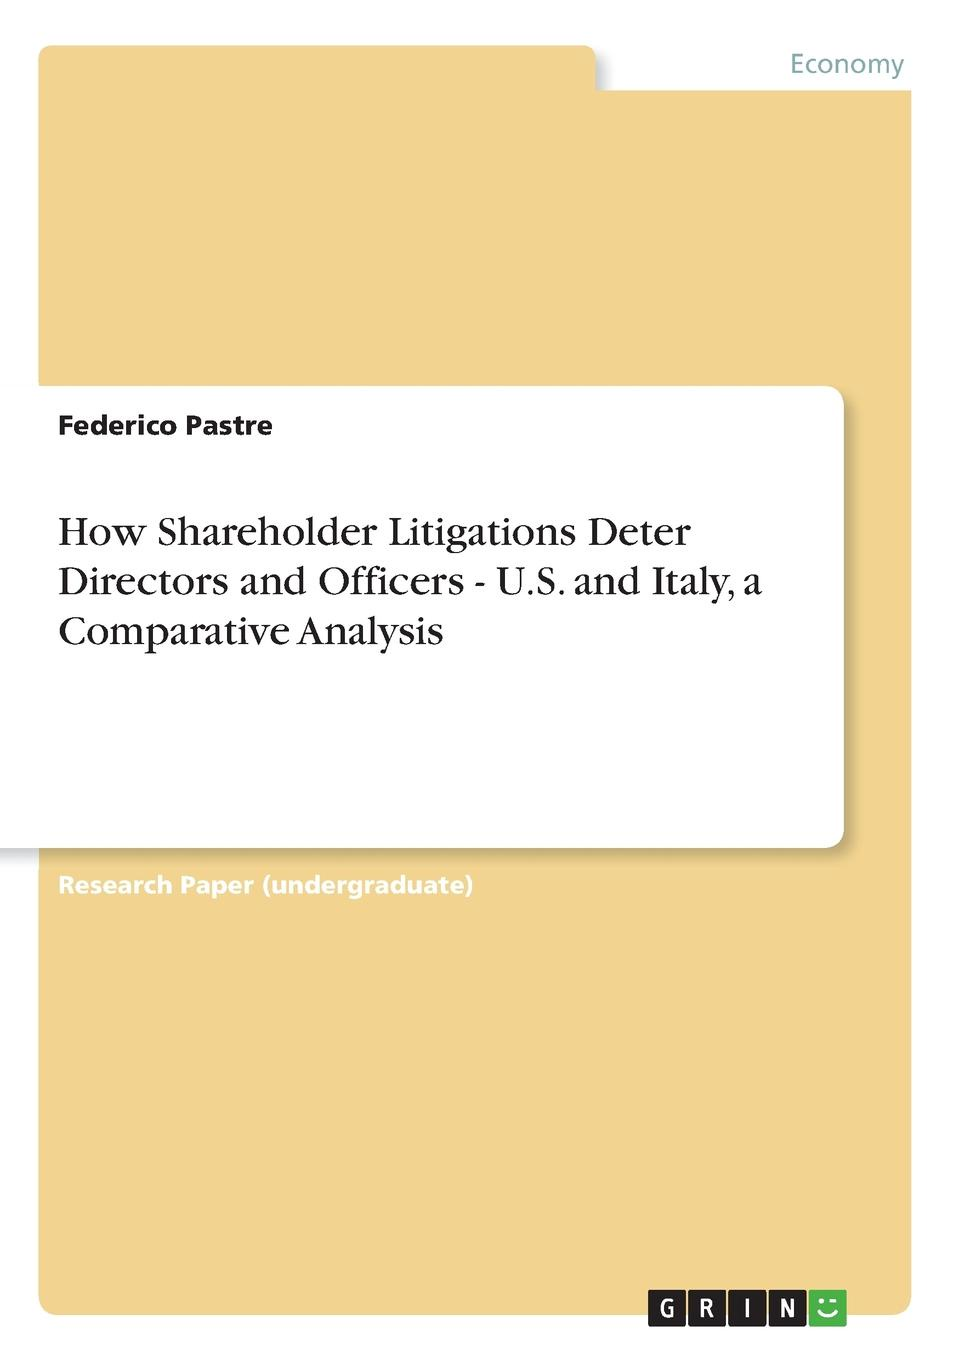 Federico Pastre How Shareholder Litigations Deter Directors and Officers - U.S. and Italy, a Comparative Analysis the jews in the greek age paper